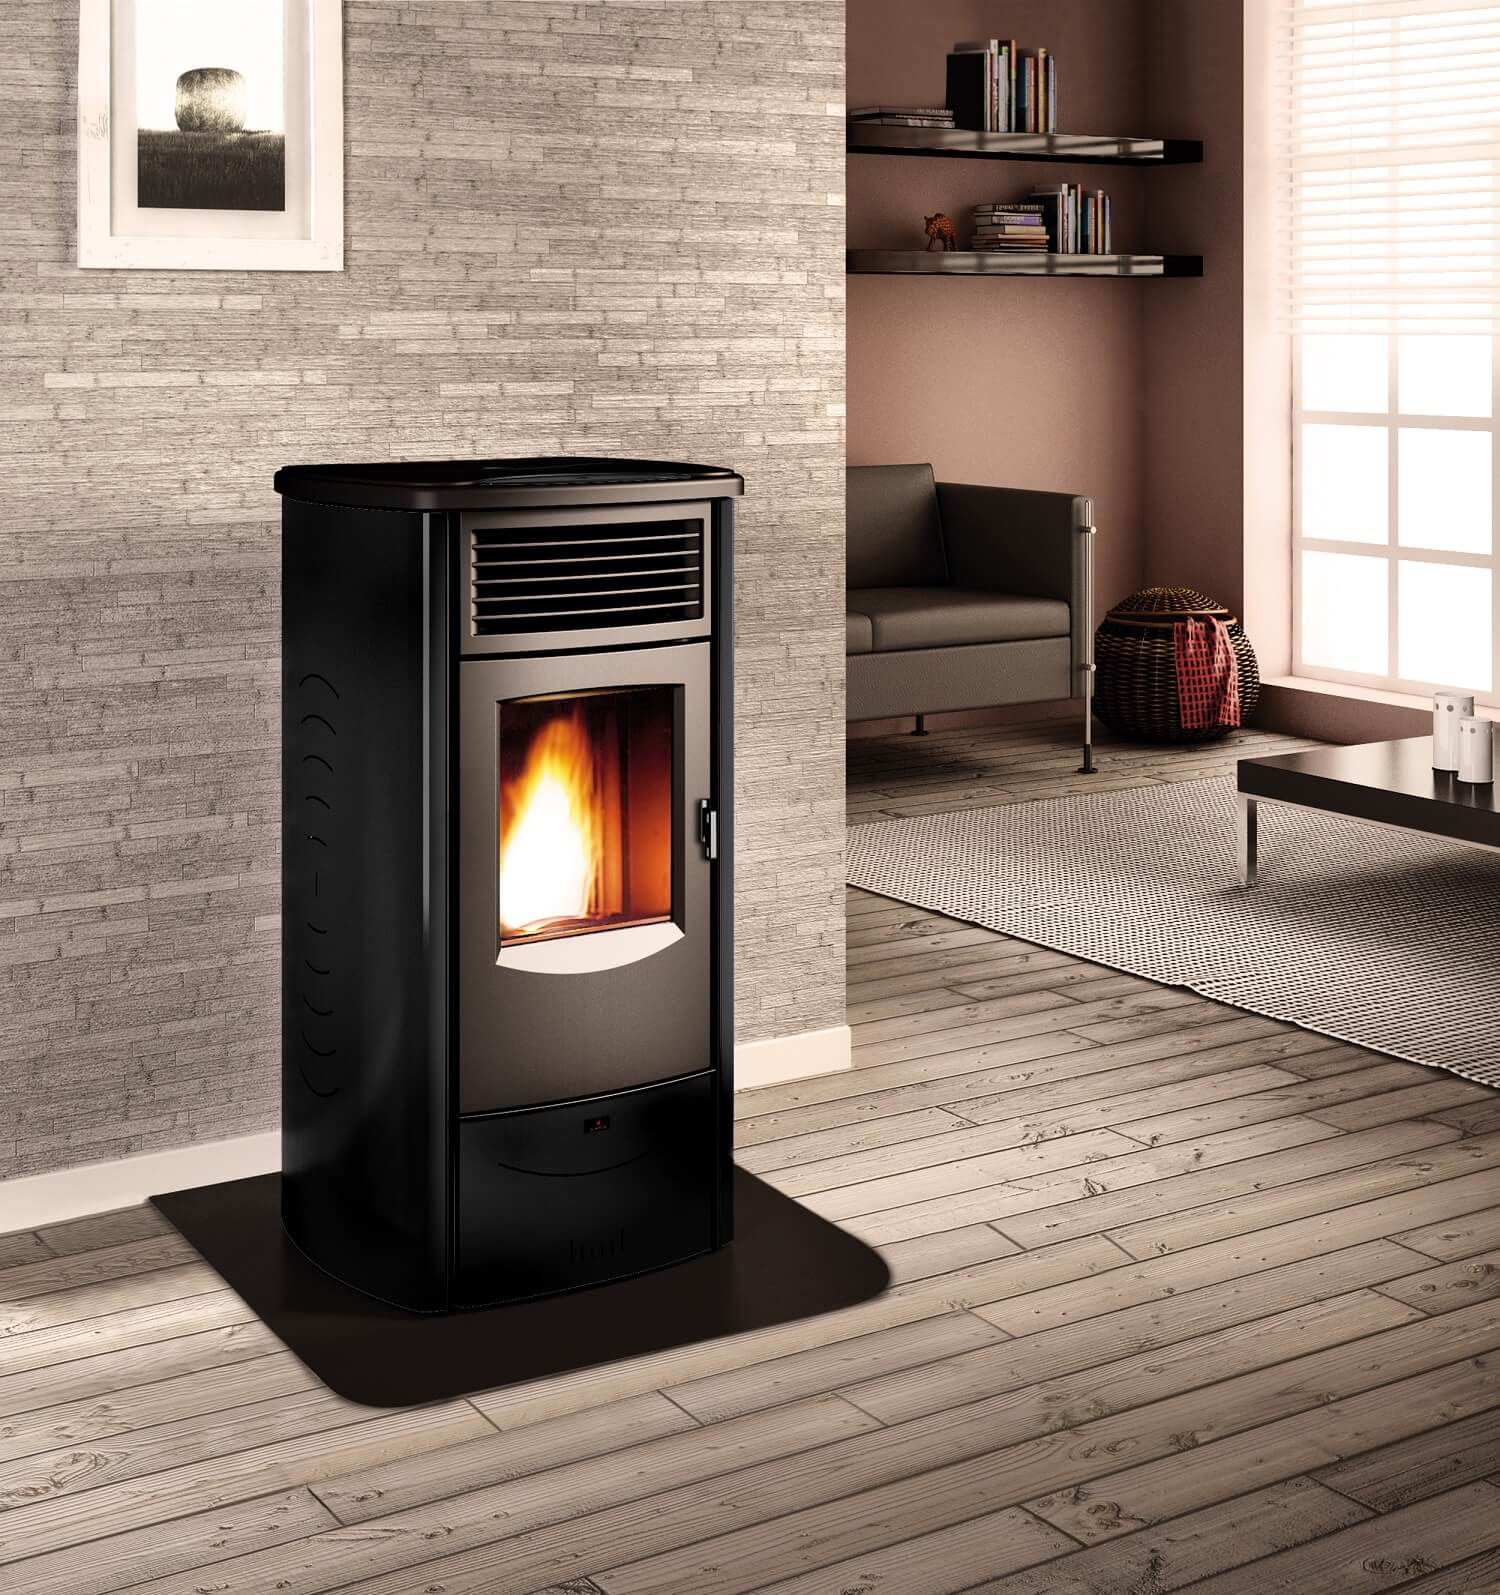 bosca spirit 500 pellet stove poele aux granules. Black Bedroom Furniture Sets. Home Design Ideas